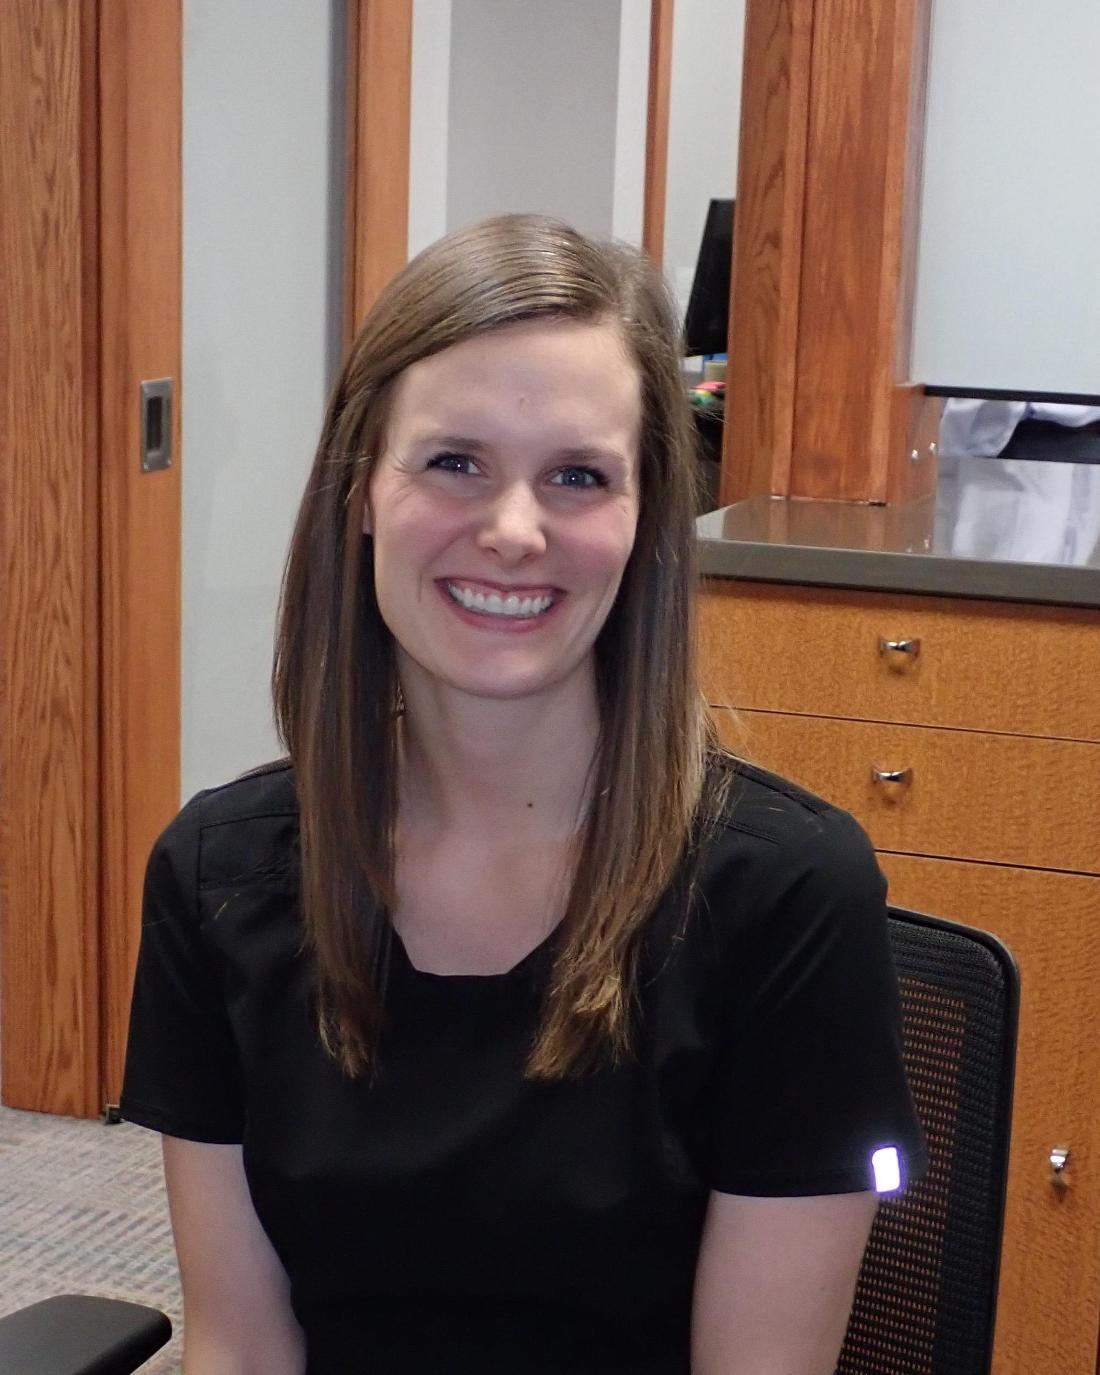 Colleen | Support Staff for Dentist Office in 61821